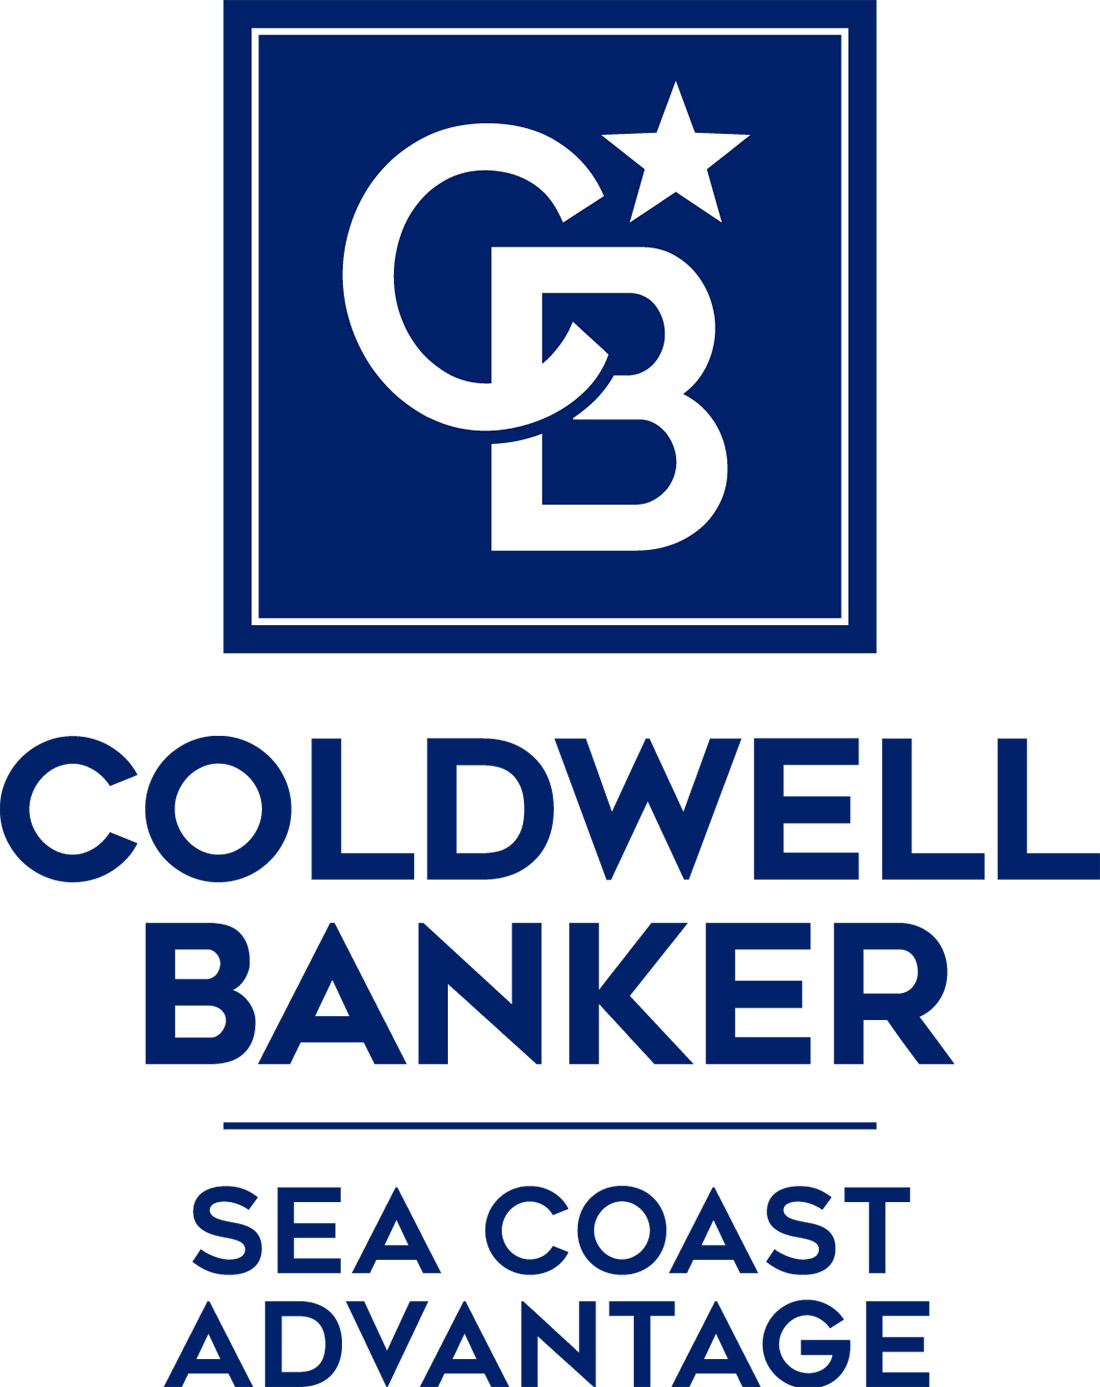 Delores Miller - Coldwell Banker Sea Coast Advantage Realty